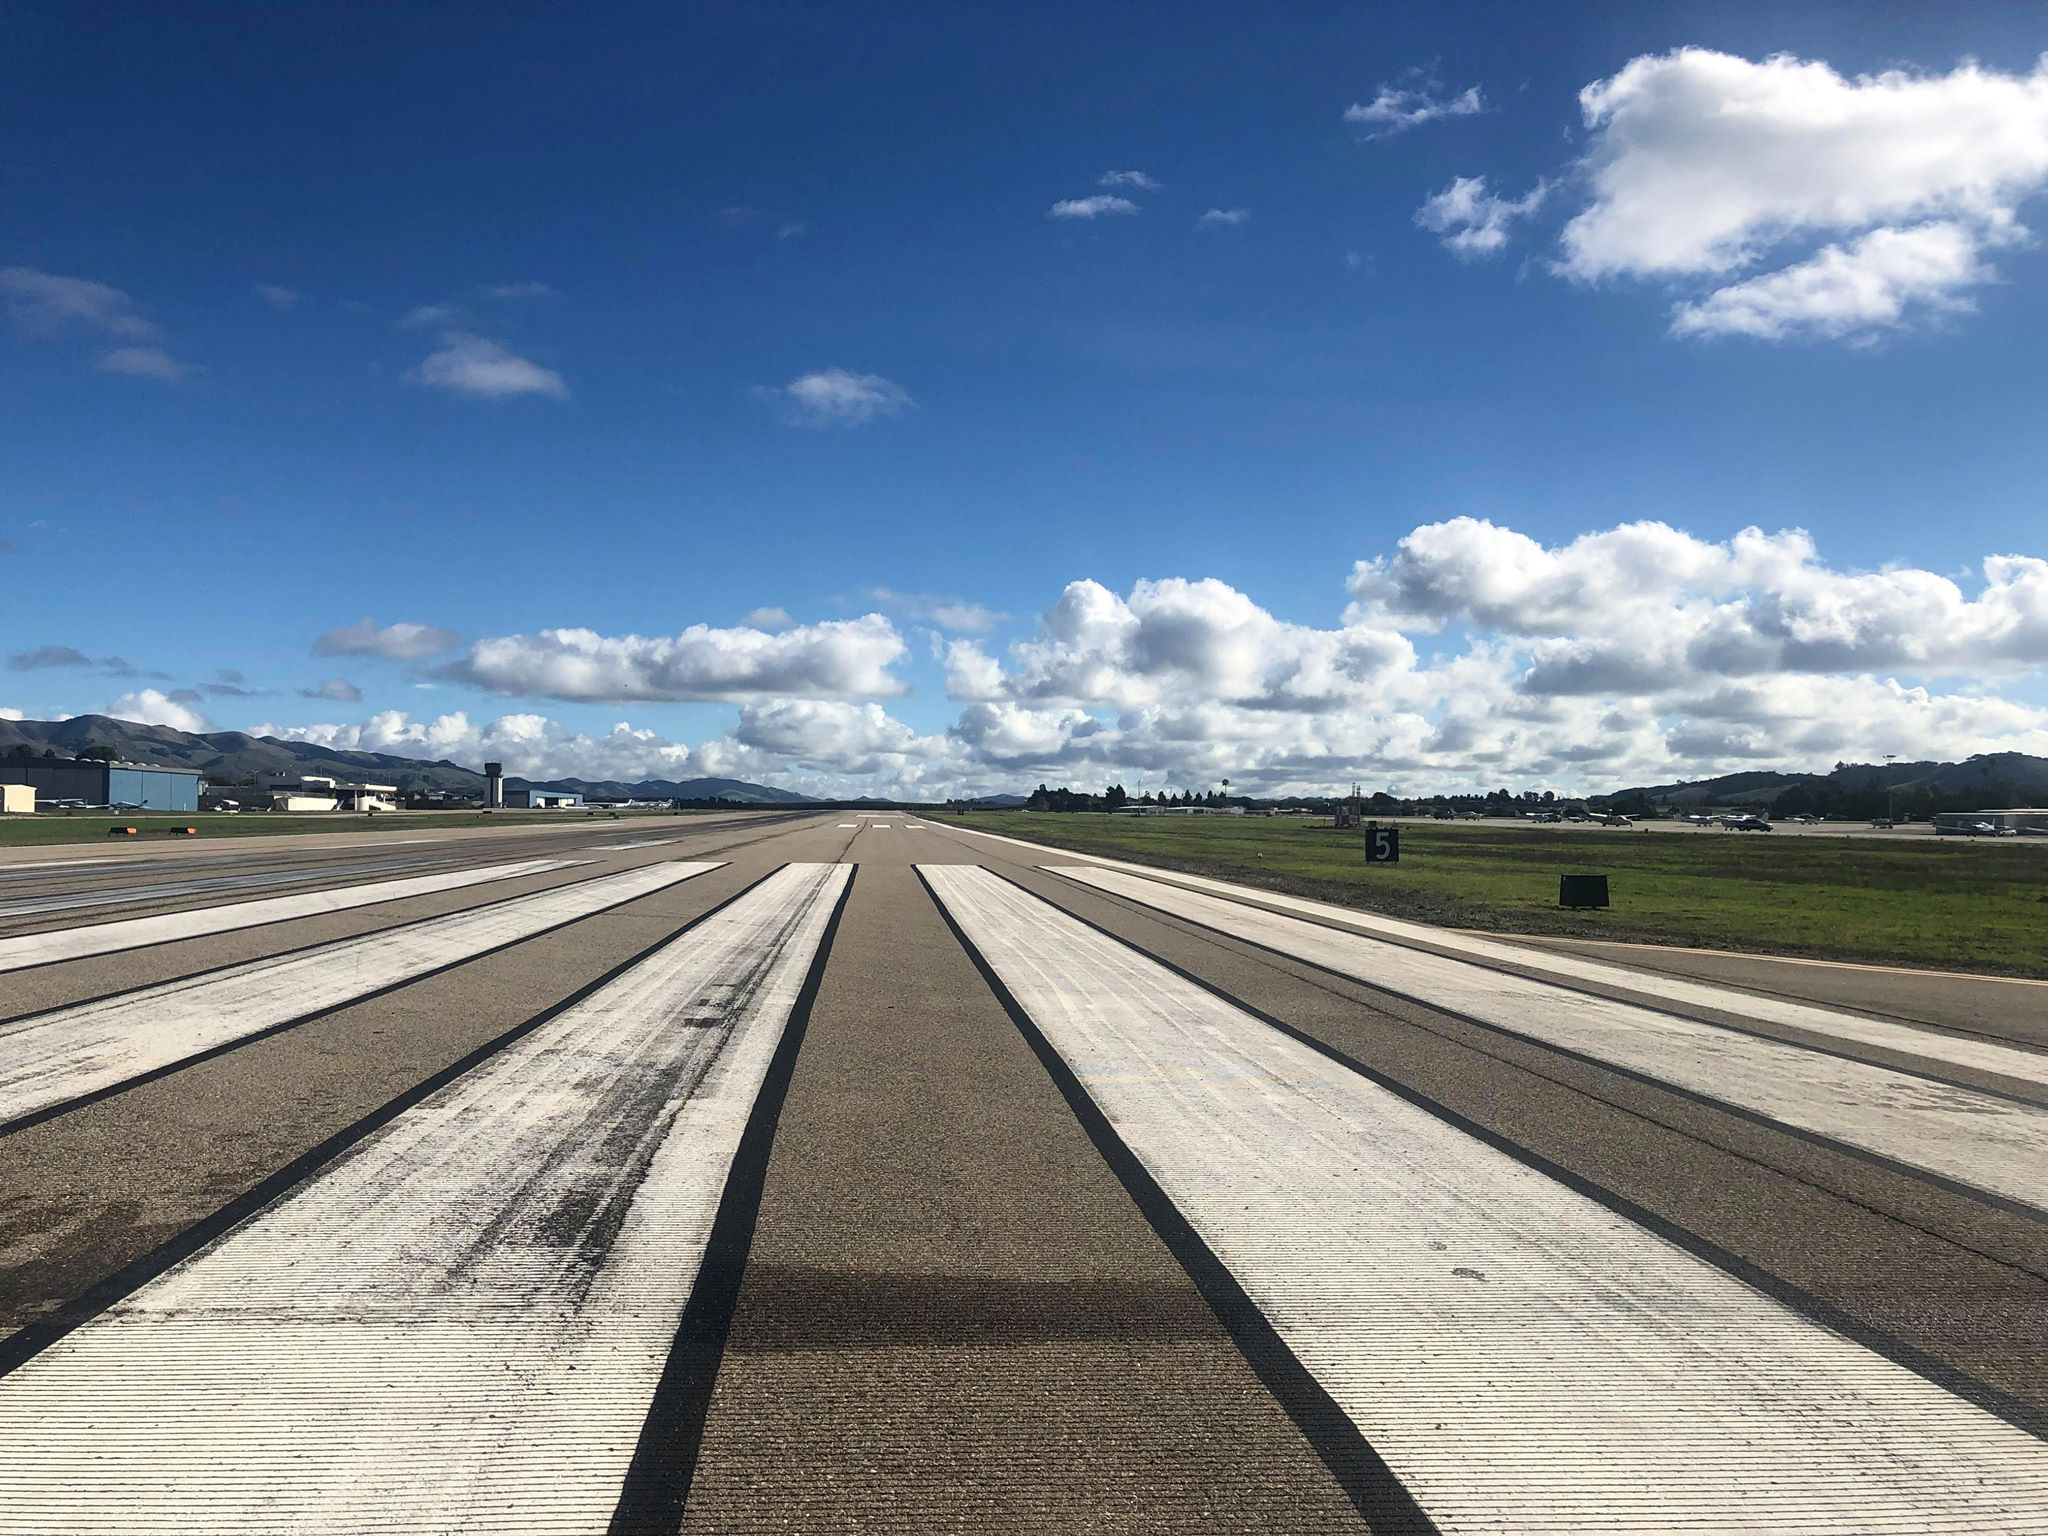 SBP Airport Runway with blue cloudy sky